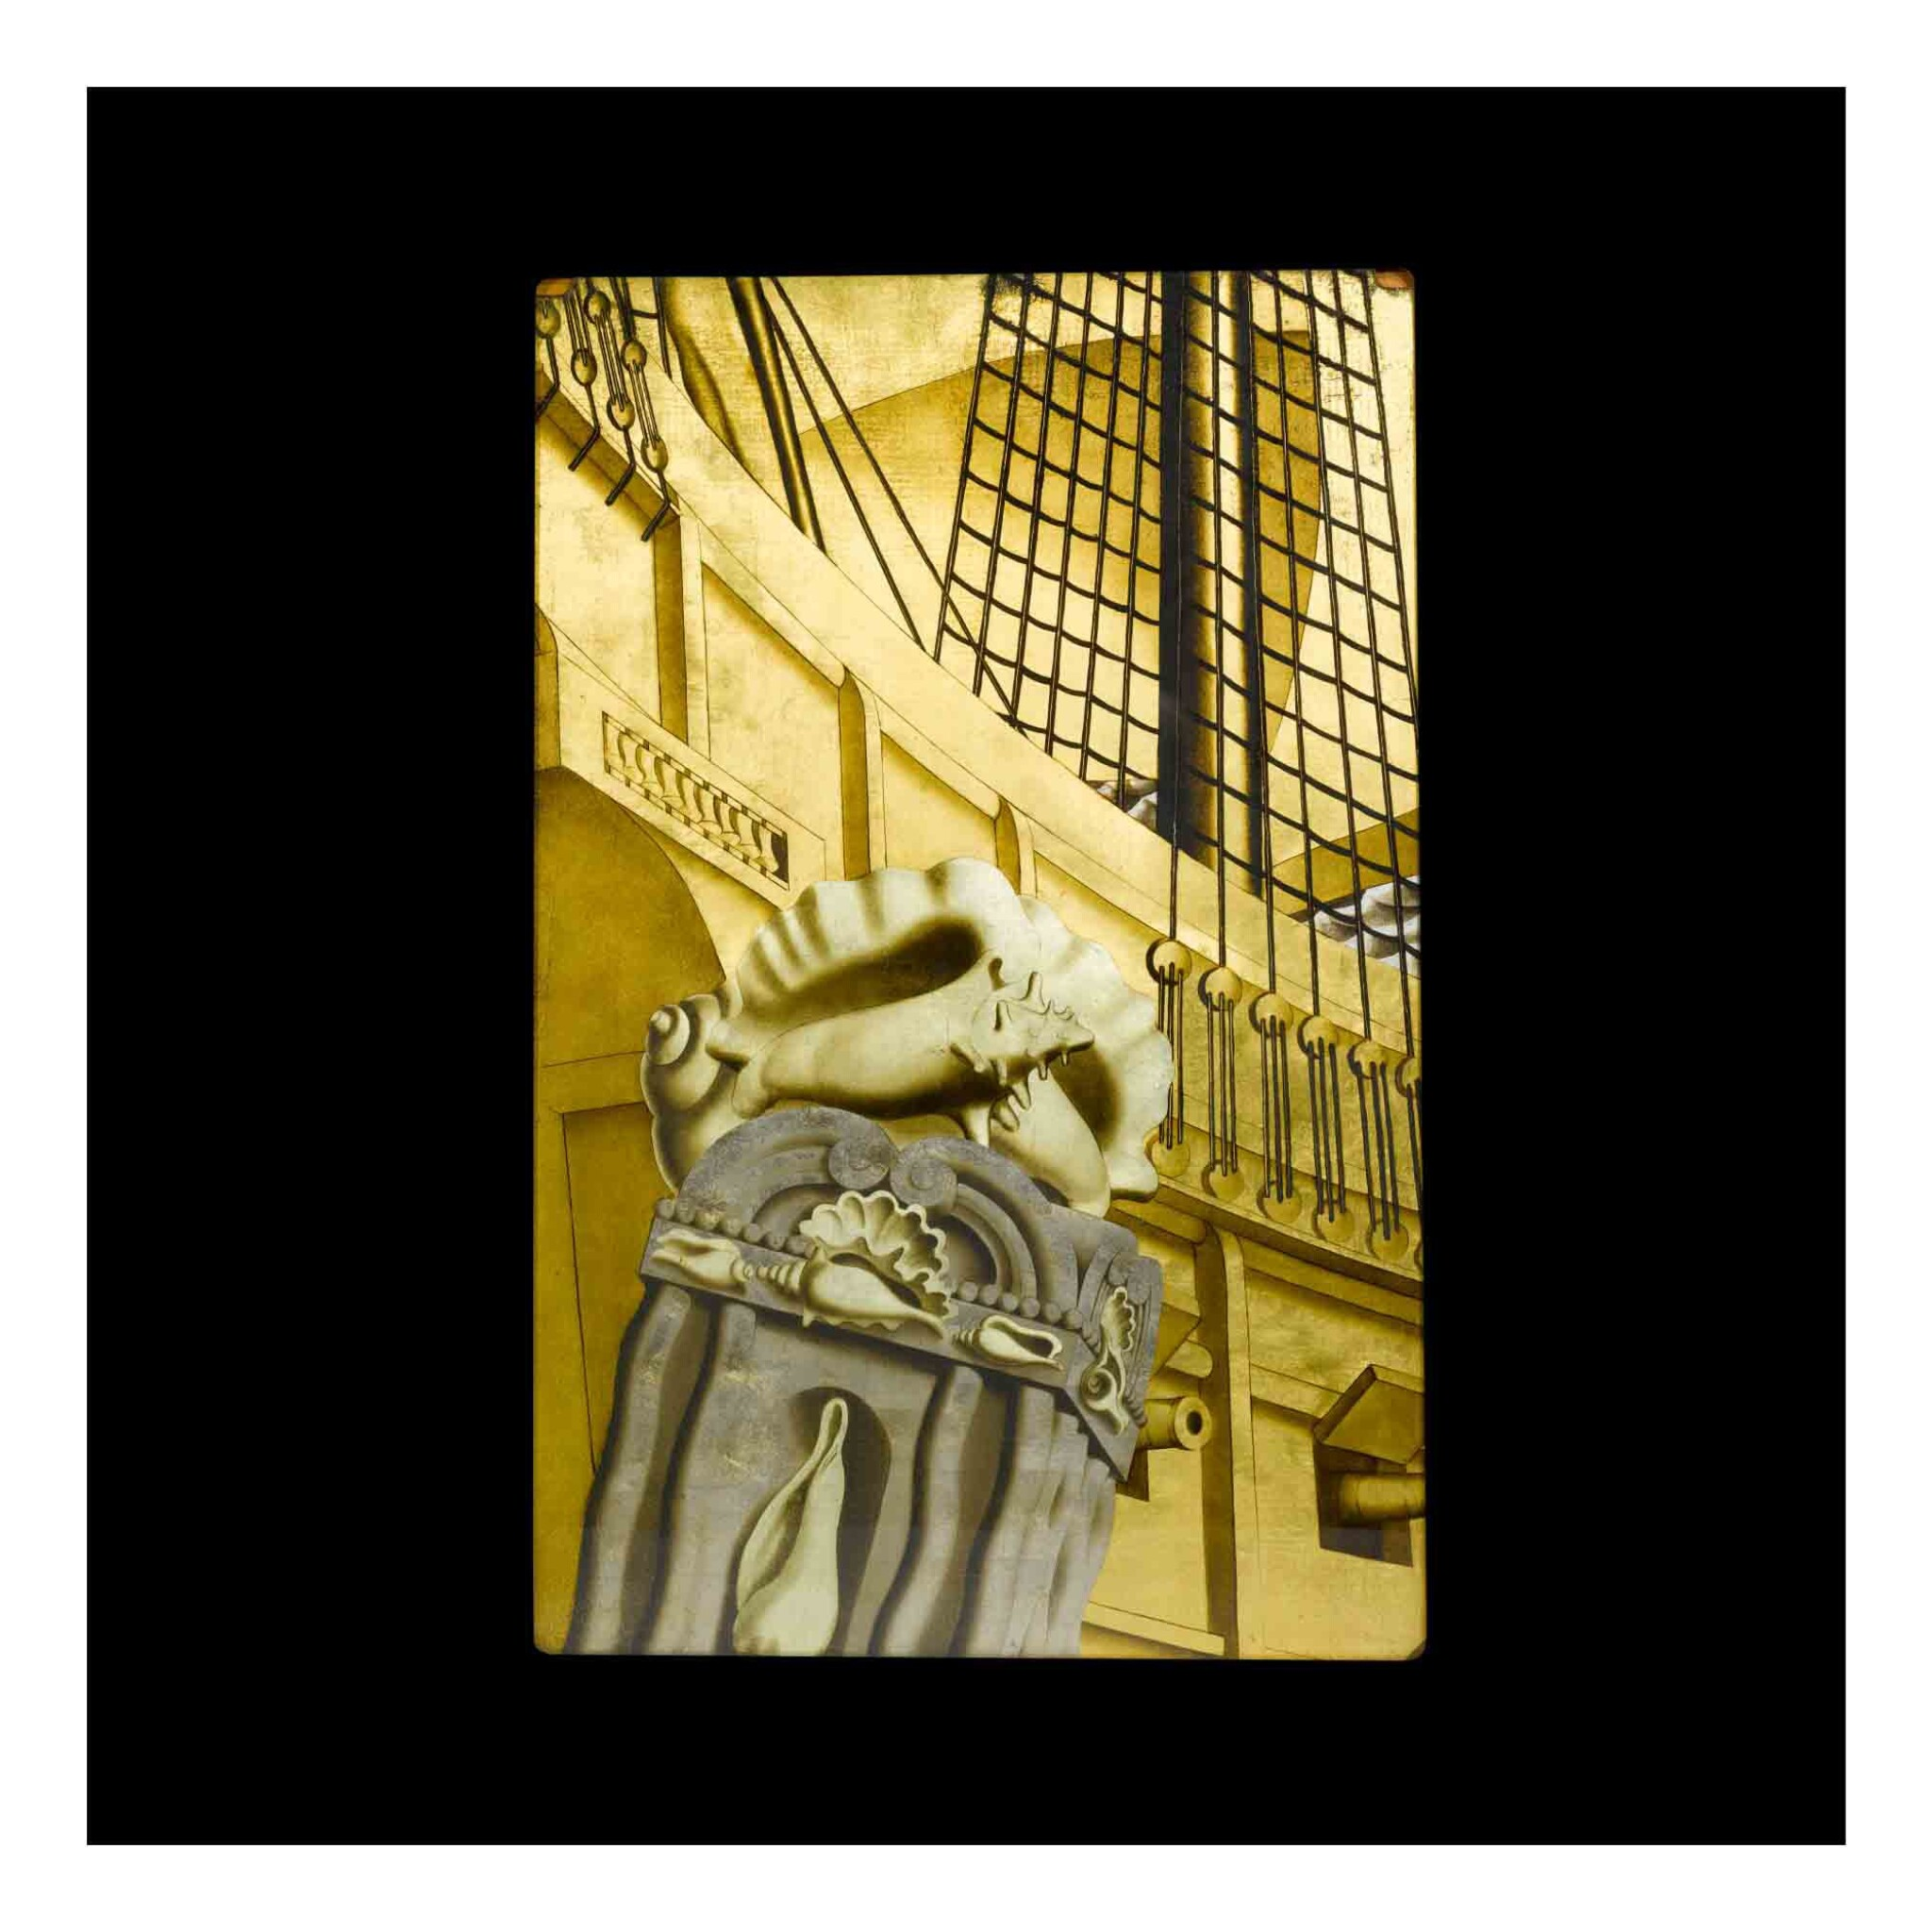 """View 1 of Lot 347. Panel from """"The Birth of Aphrodite"""" Mural from the Grand Salon of the S. S. Normandie."""